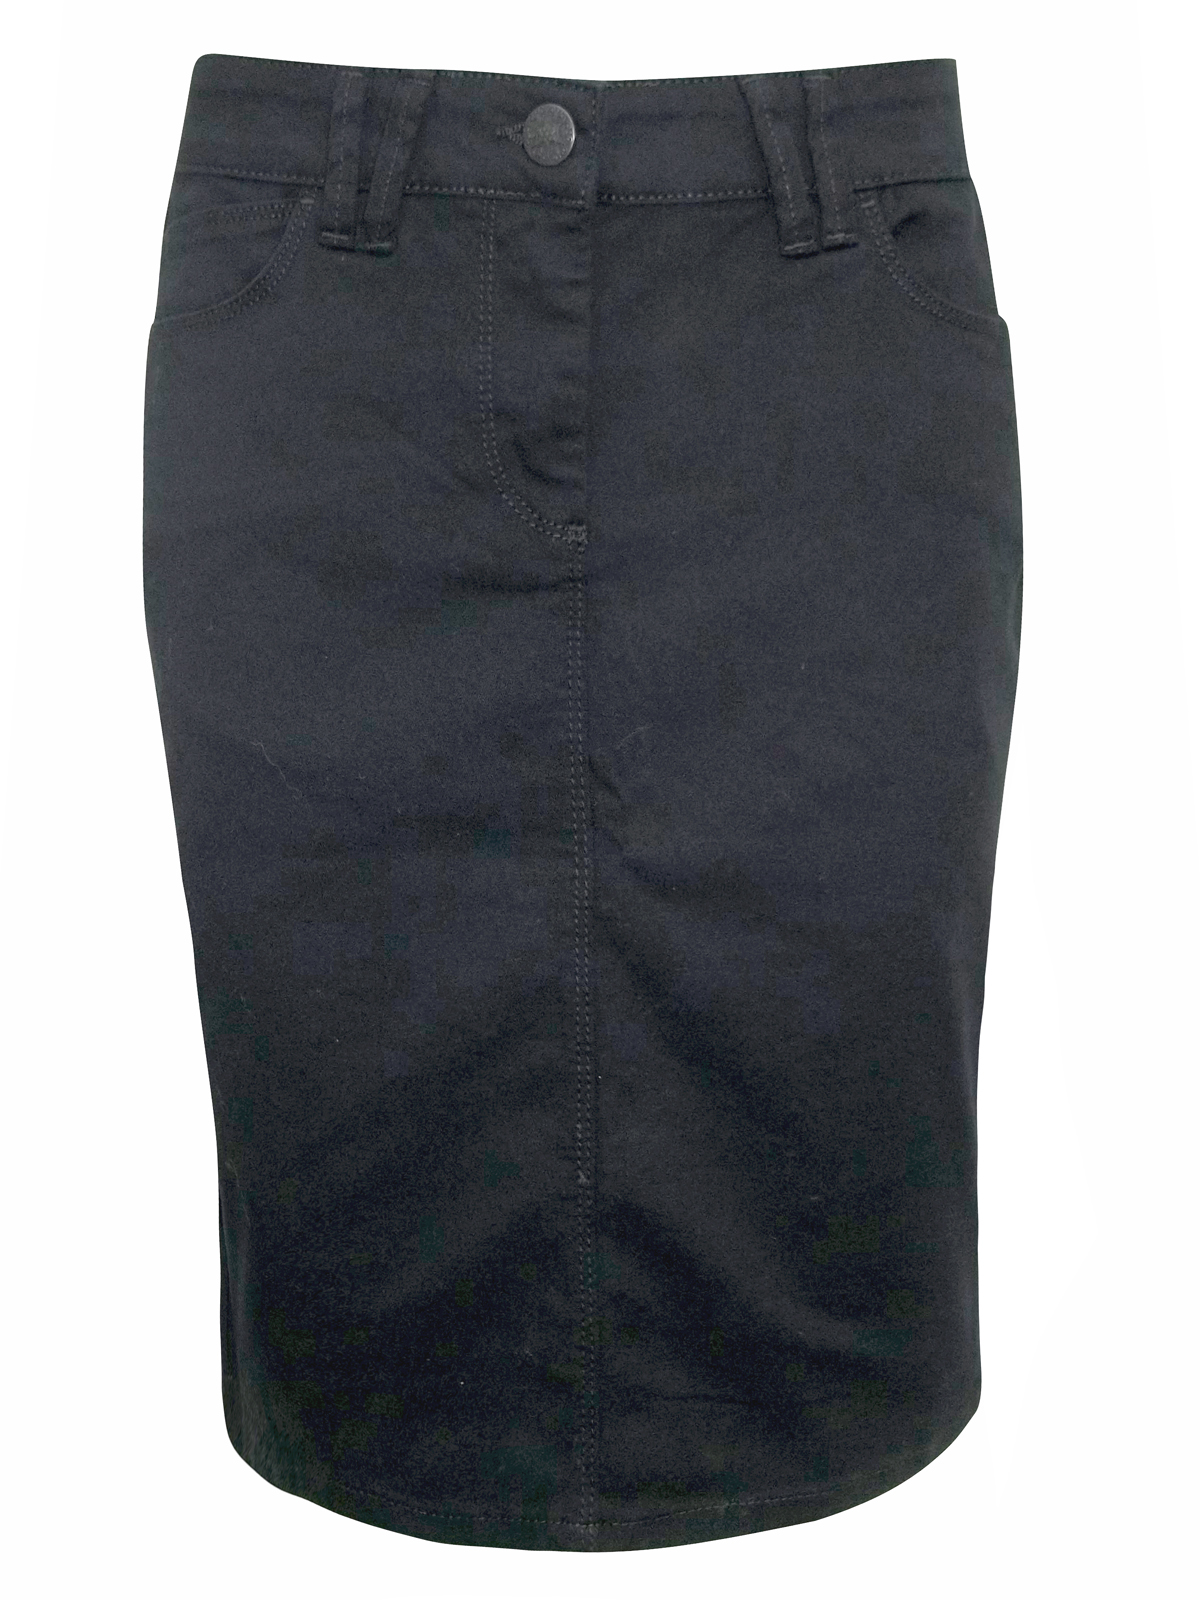 marks and spencer m s black stretch denim pencil